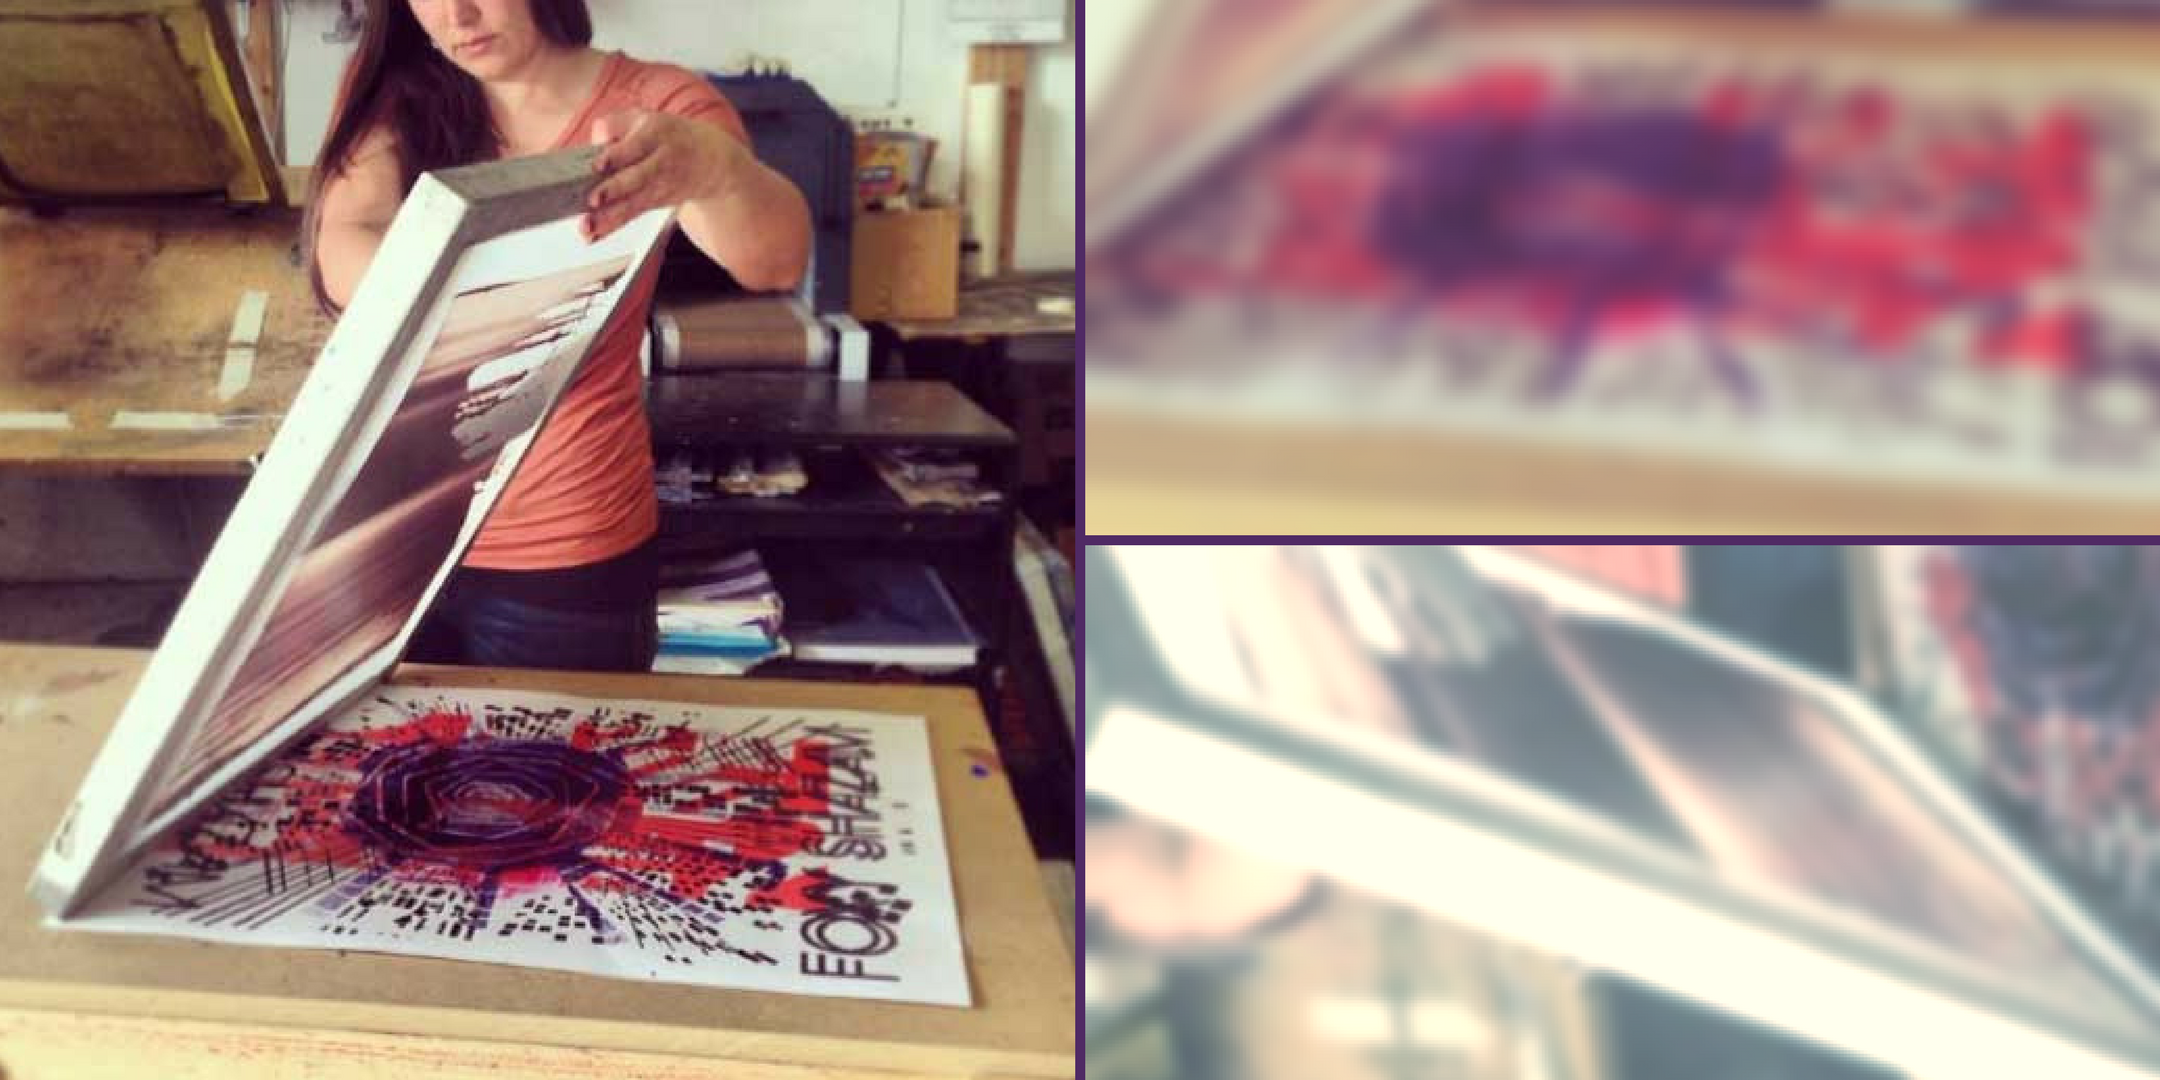 Woman Screenprinting and collage of image details